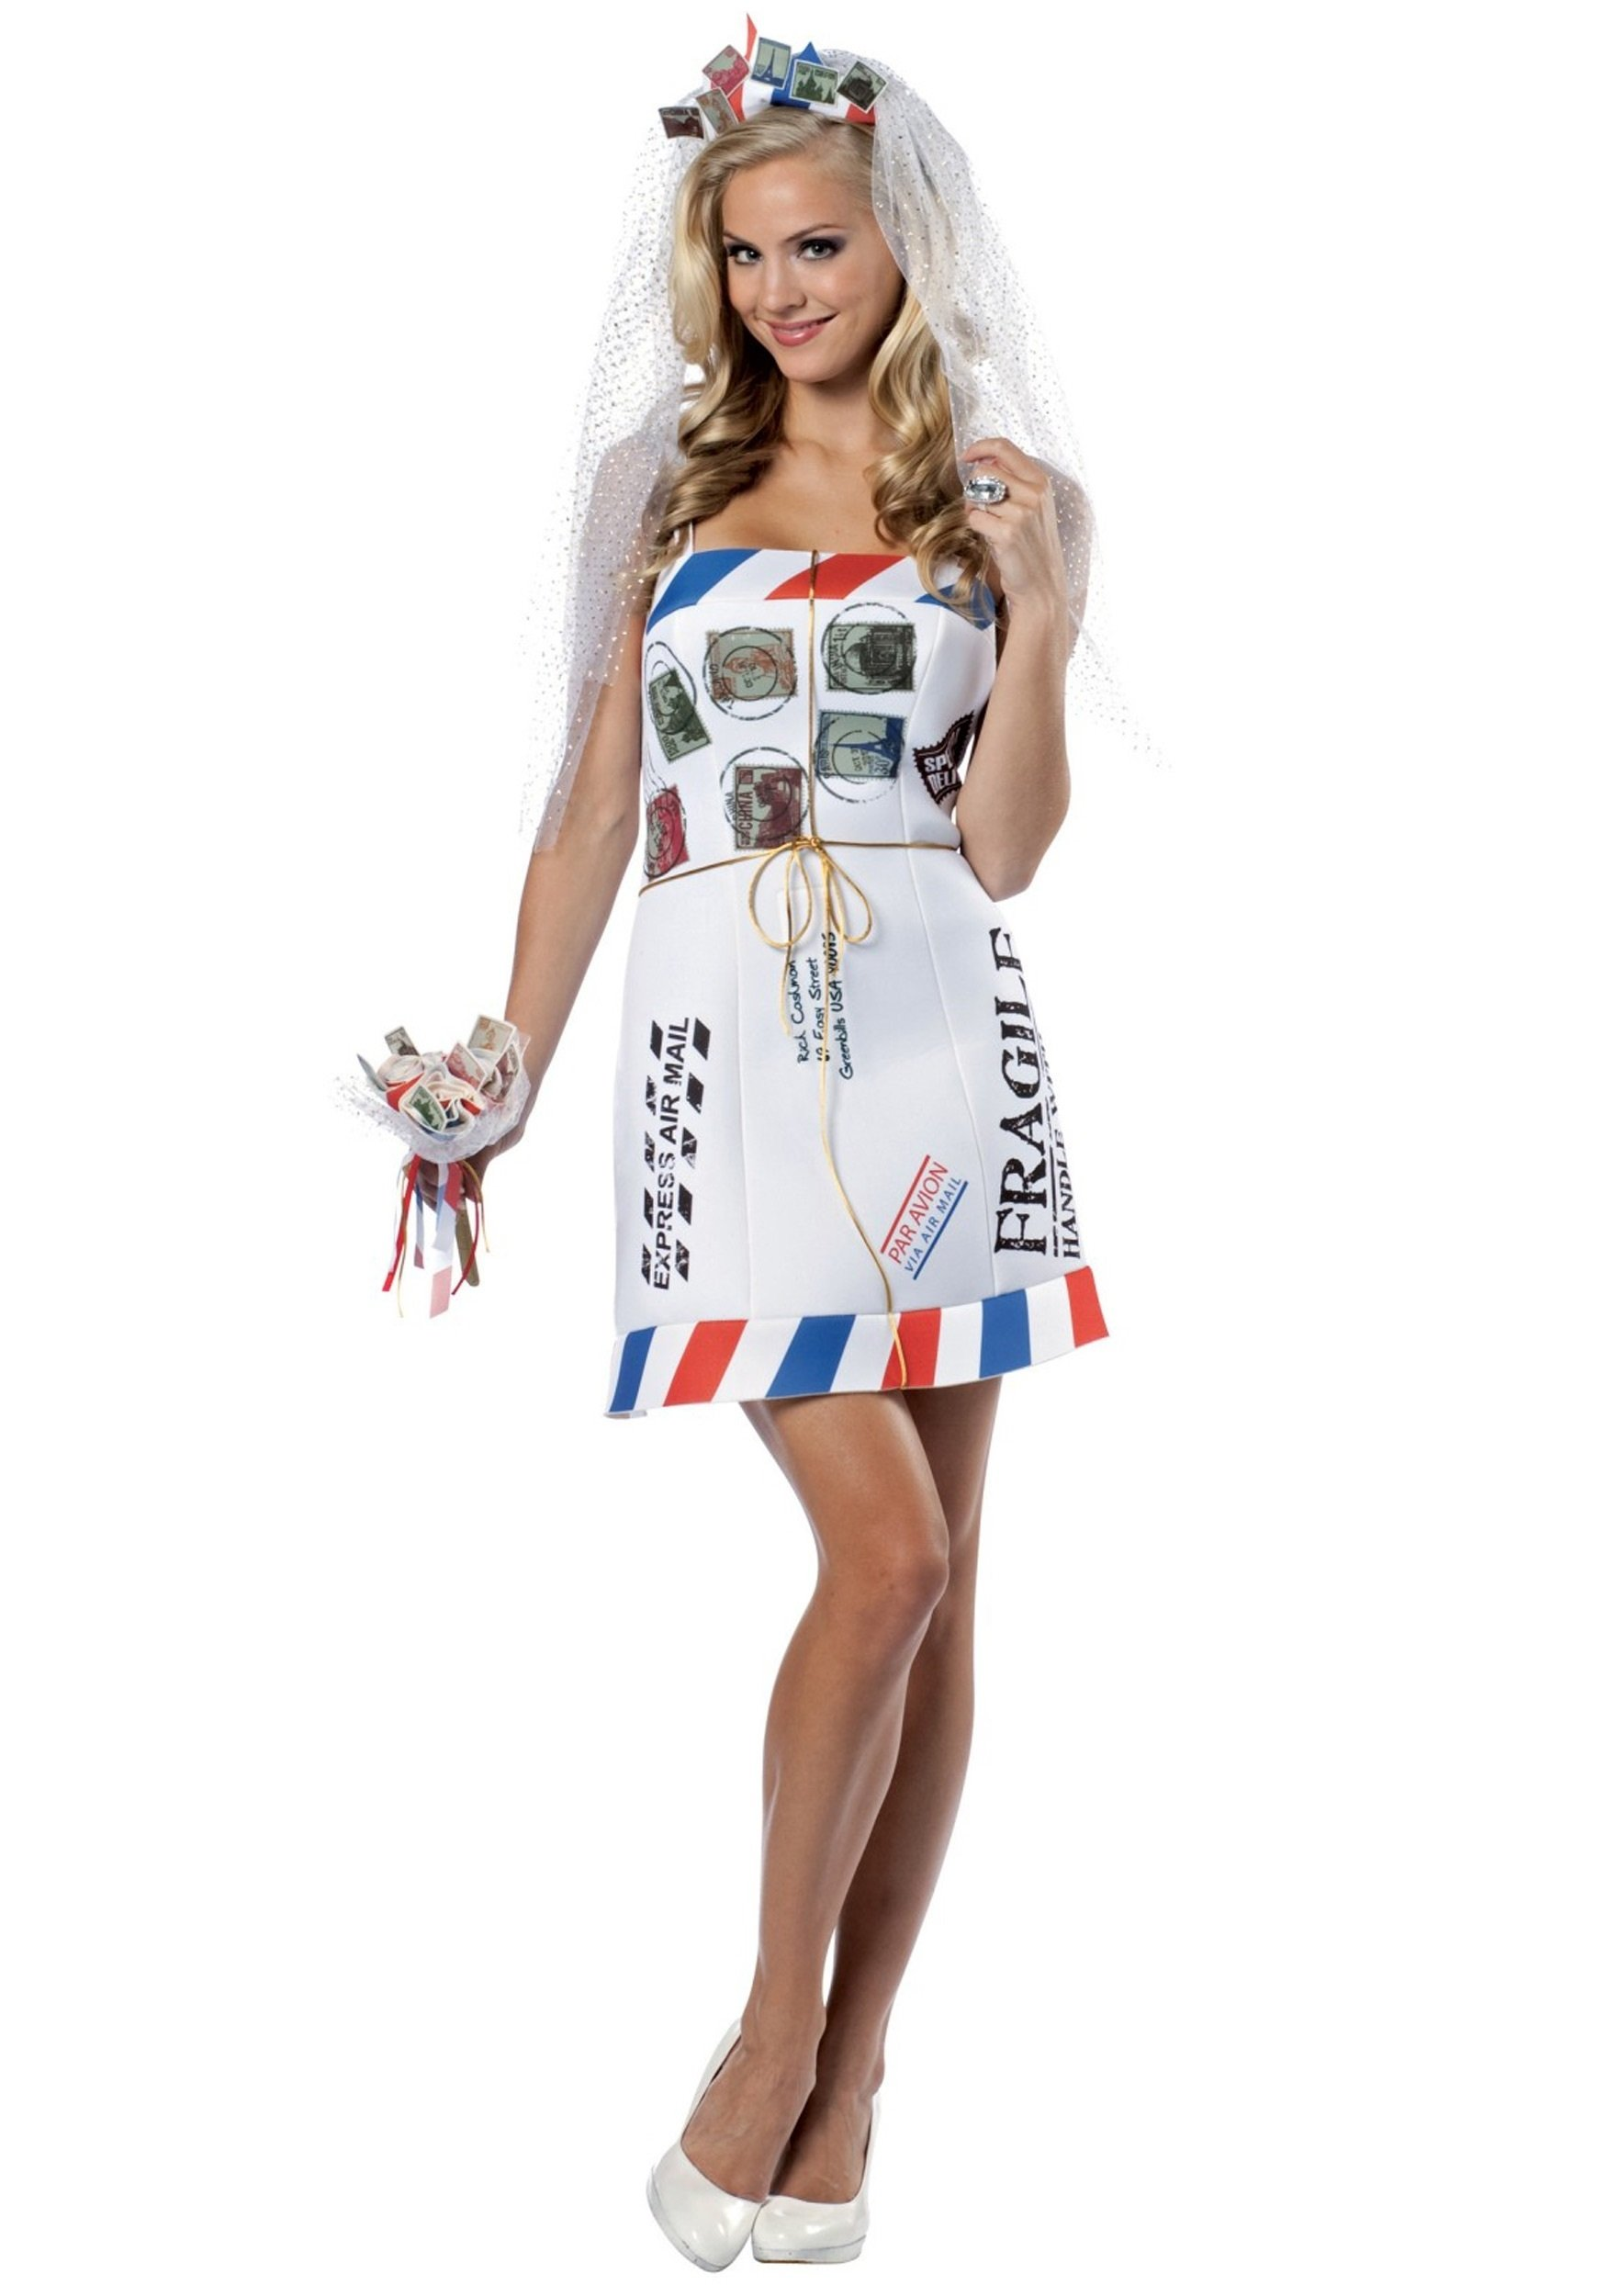 funny mail order bride costume - funny halloween costume ideas for women